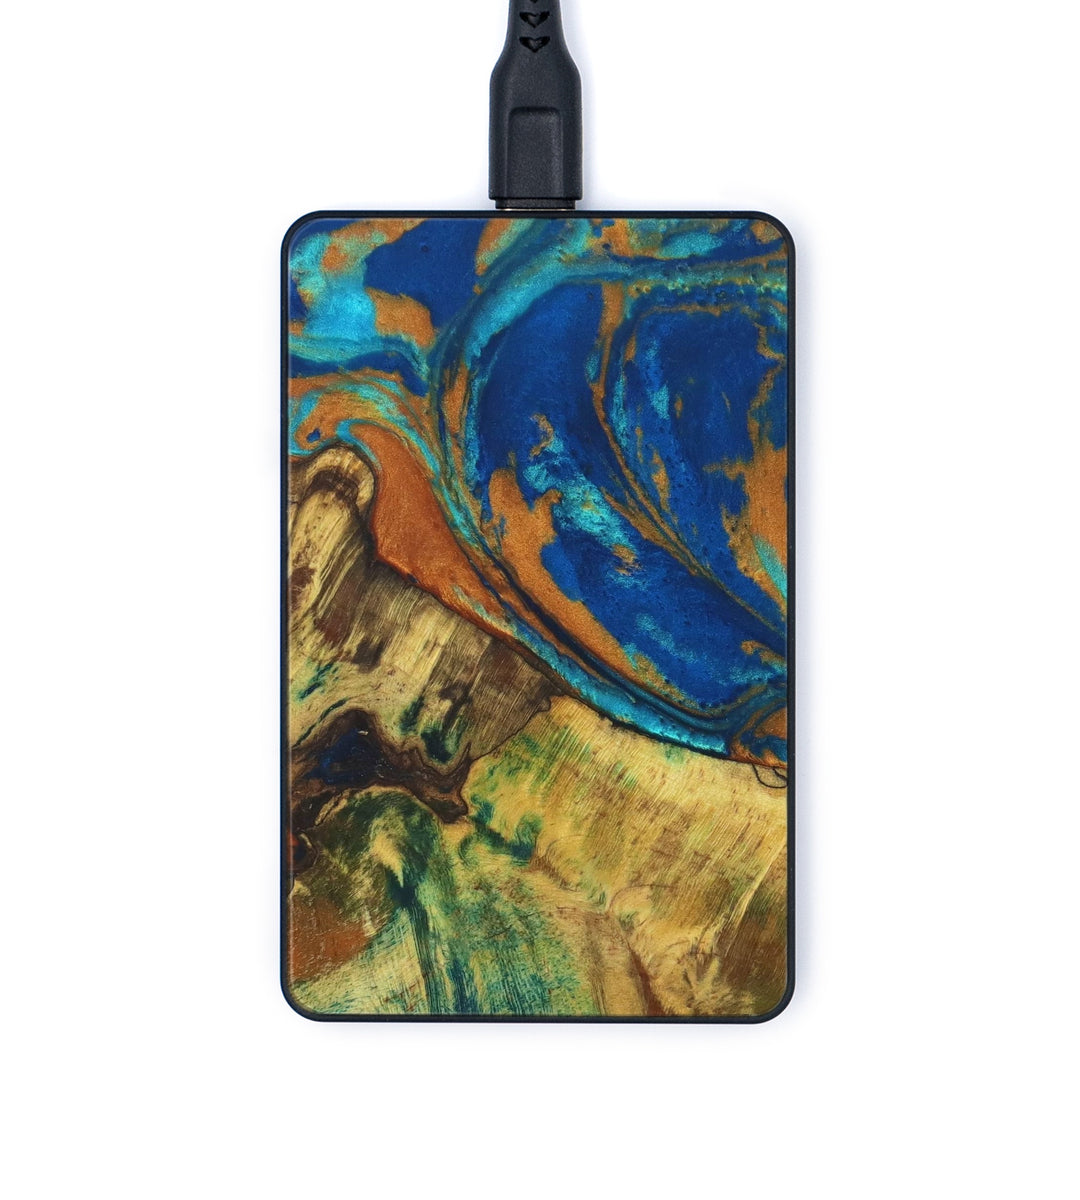 Thin Wireless Charger - Lovina (Teal & Gold, 334961)